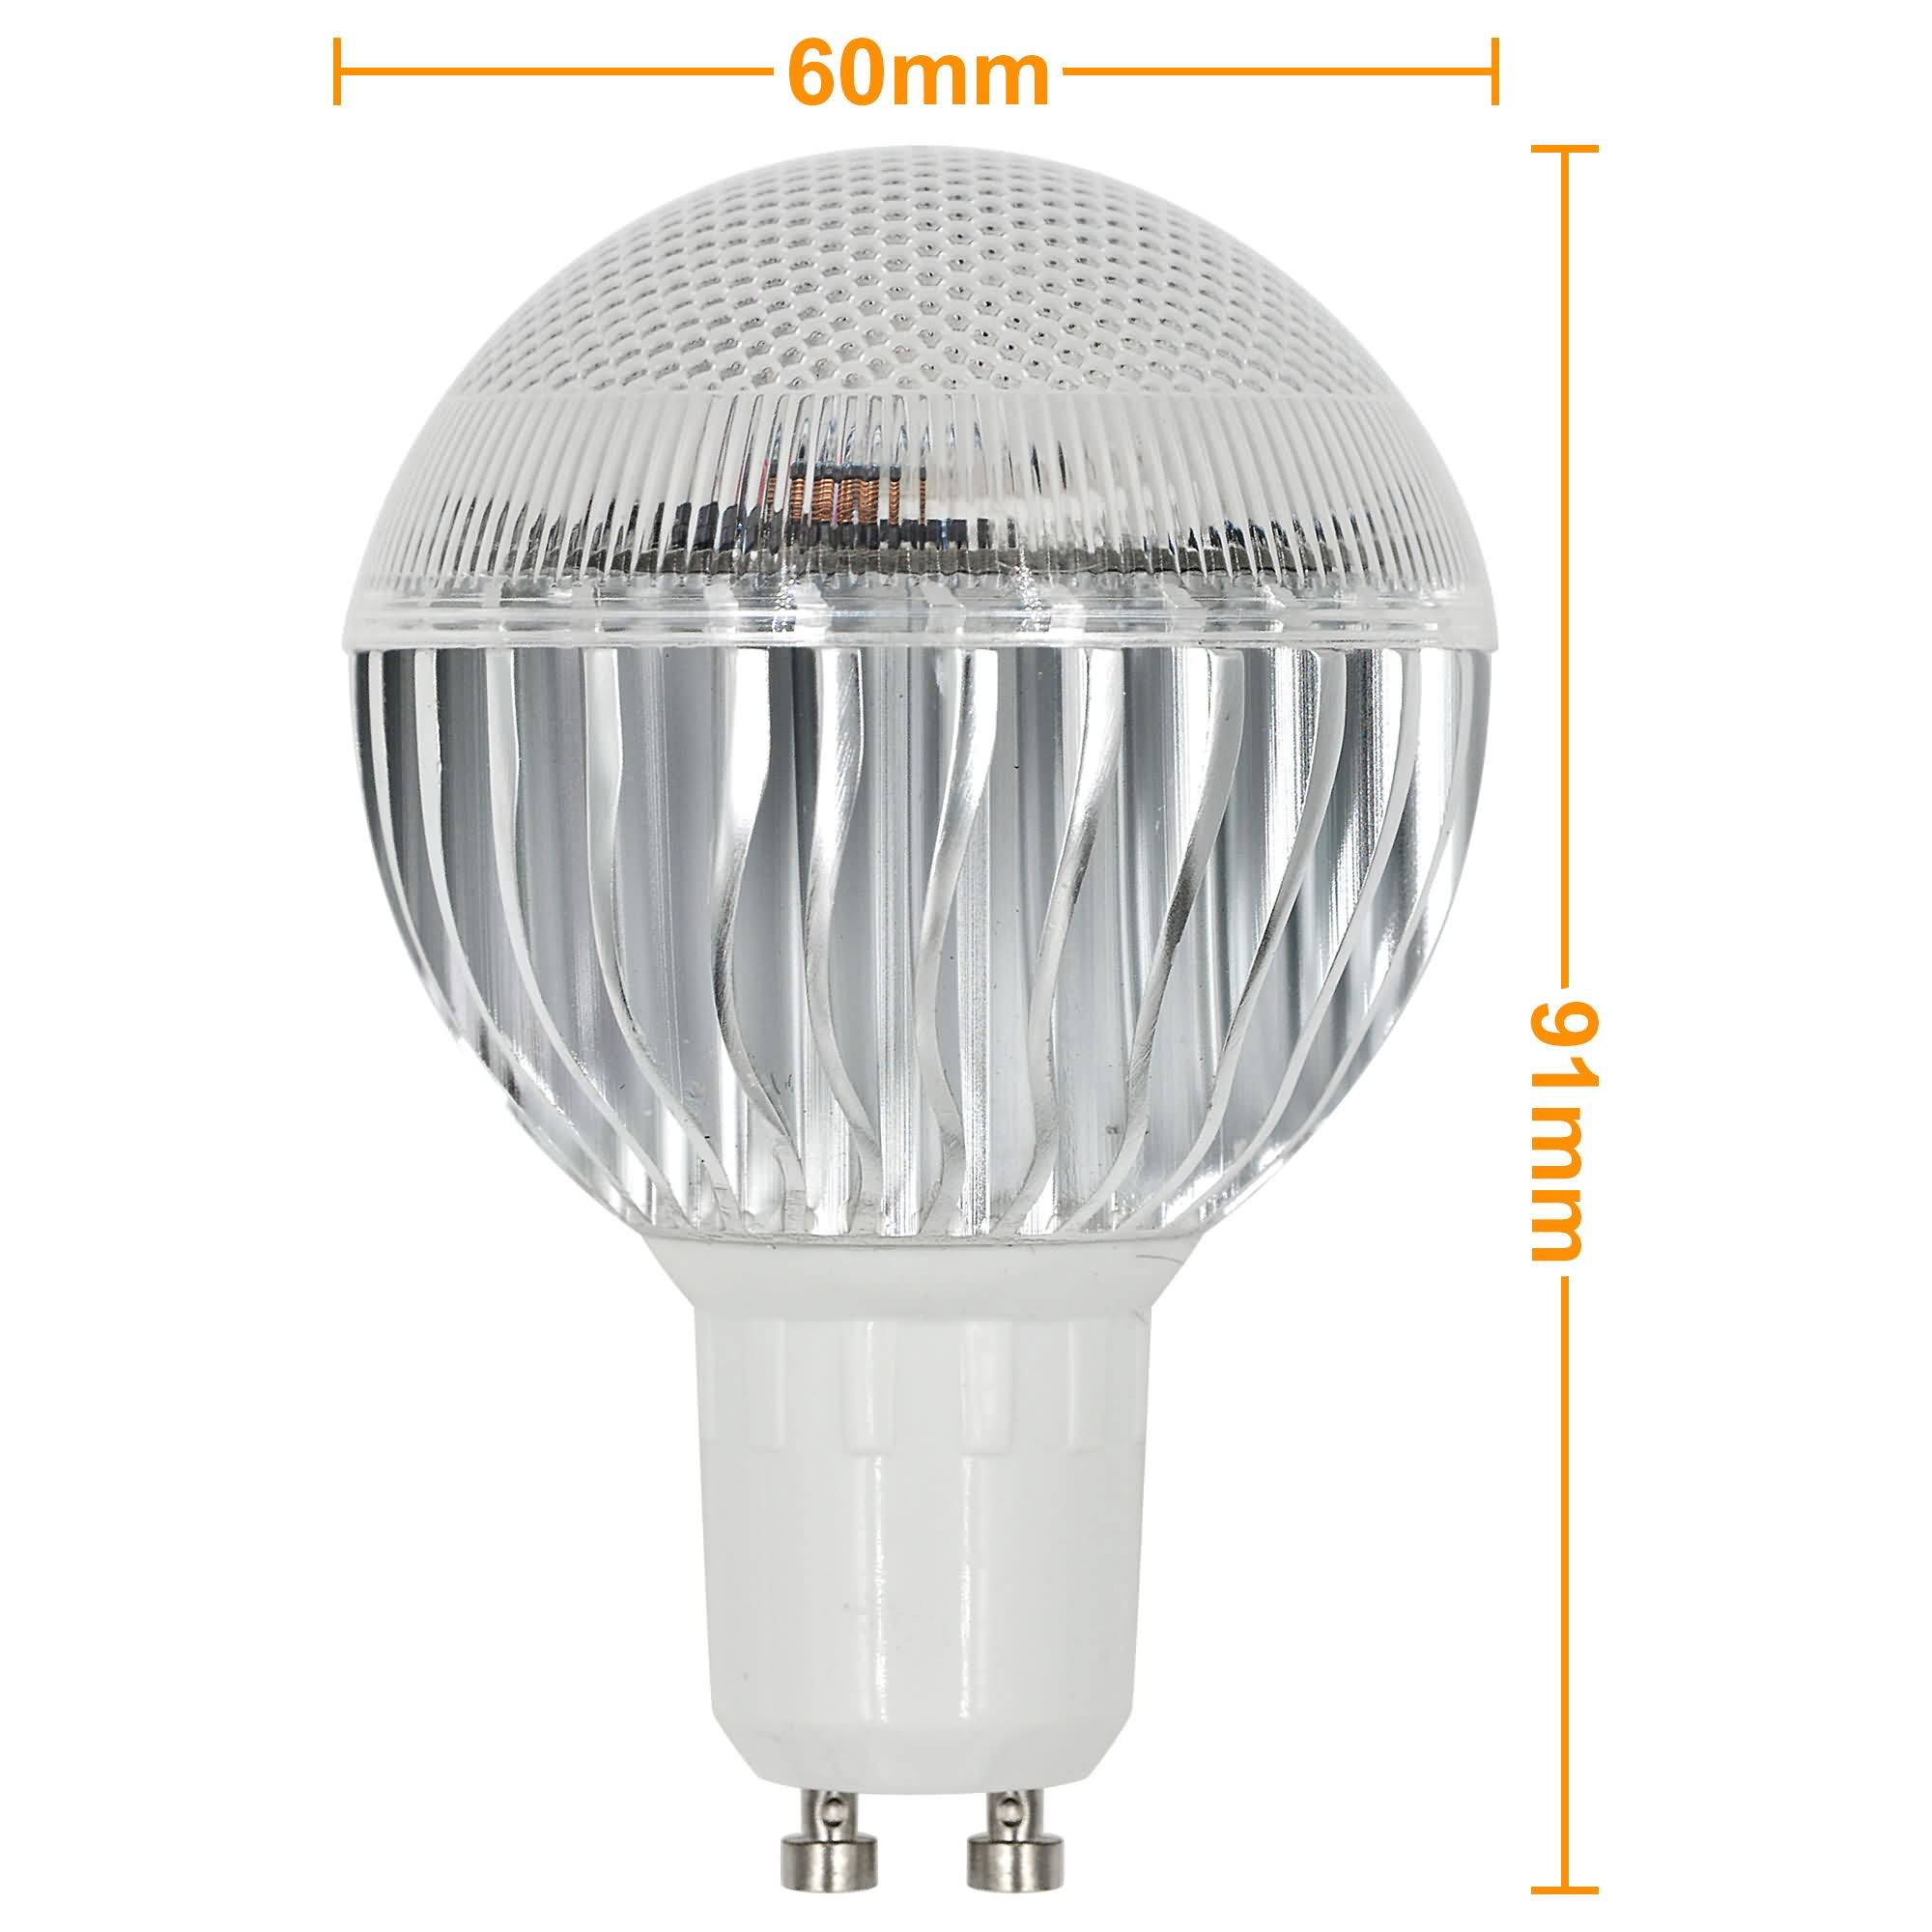 Mengsled Mengs Gu10 8w Led Rgb Light 16 Colour Changing Smd Leds Led Globe Lamp Bulb With Ir